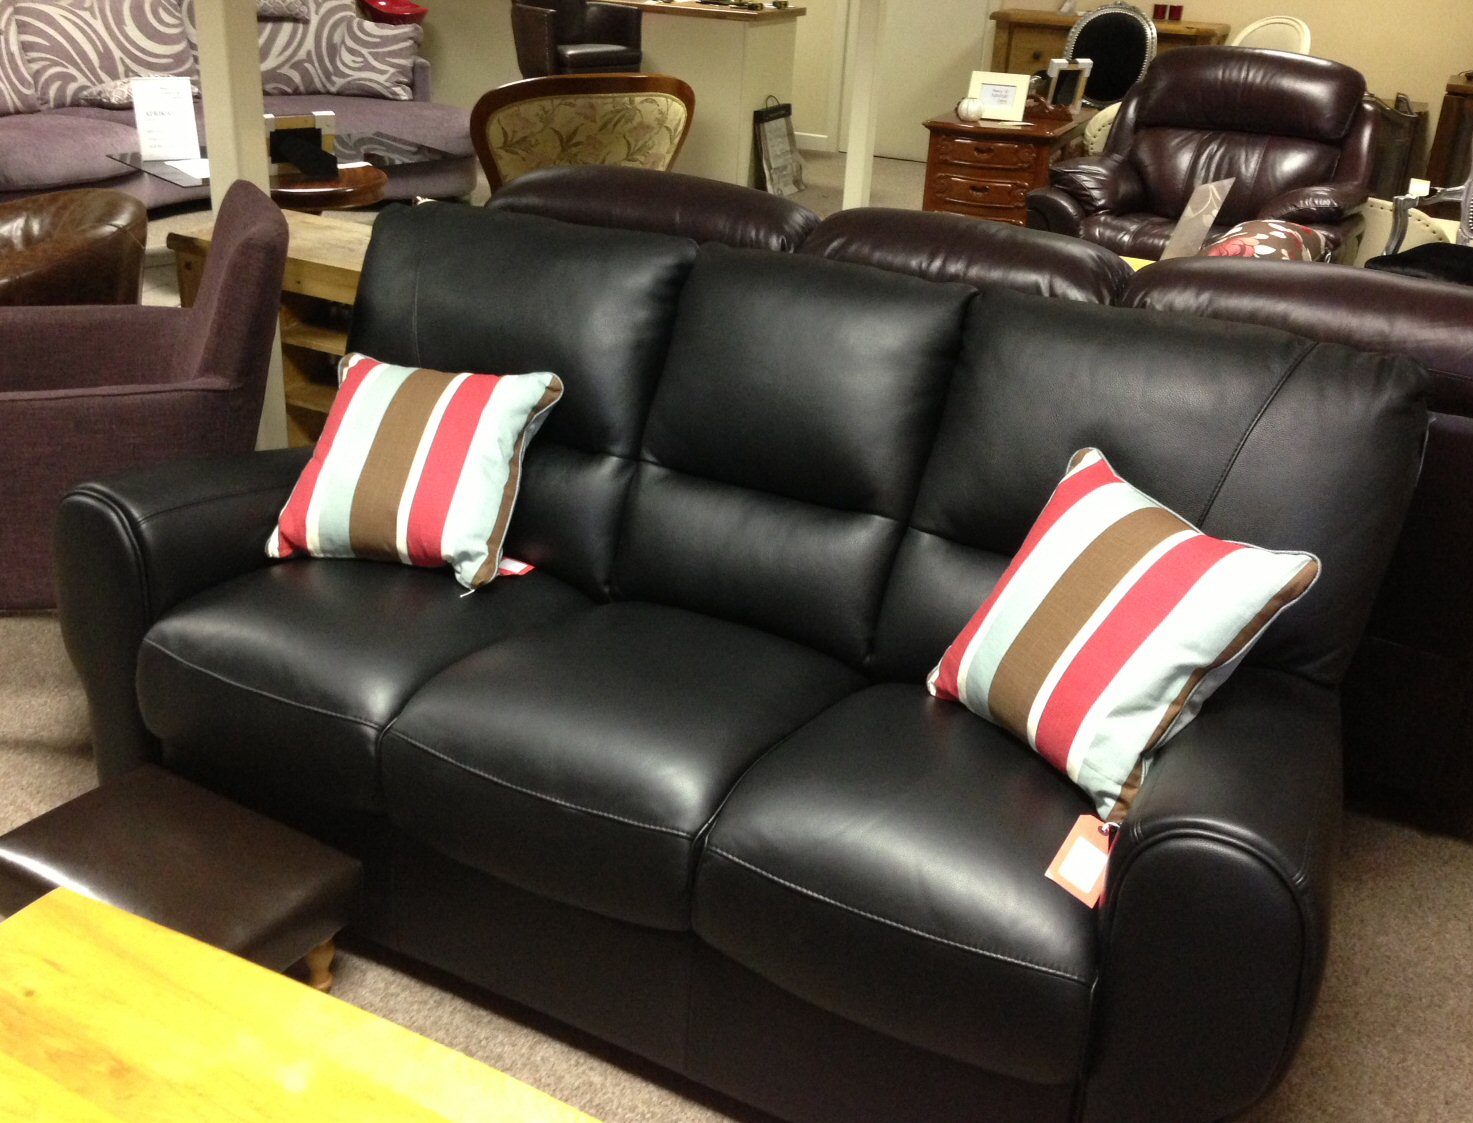 Agave 3 seater Italian Leather